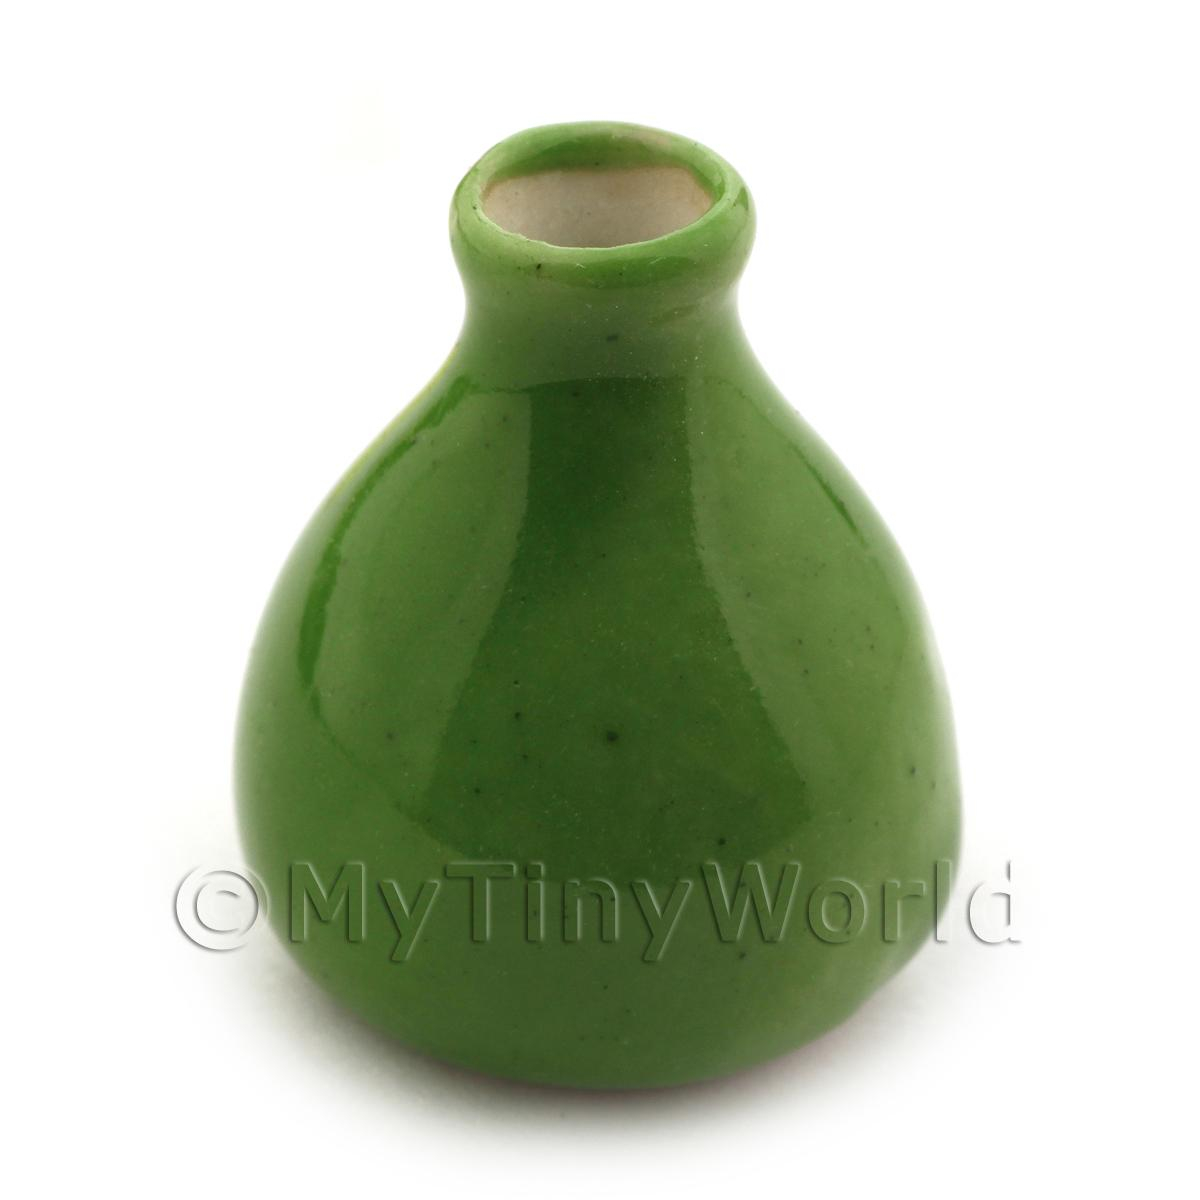 17mm Dolls House Miniature Green Vase